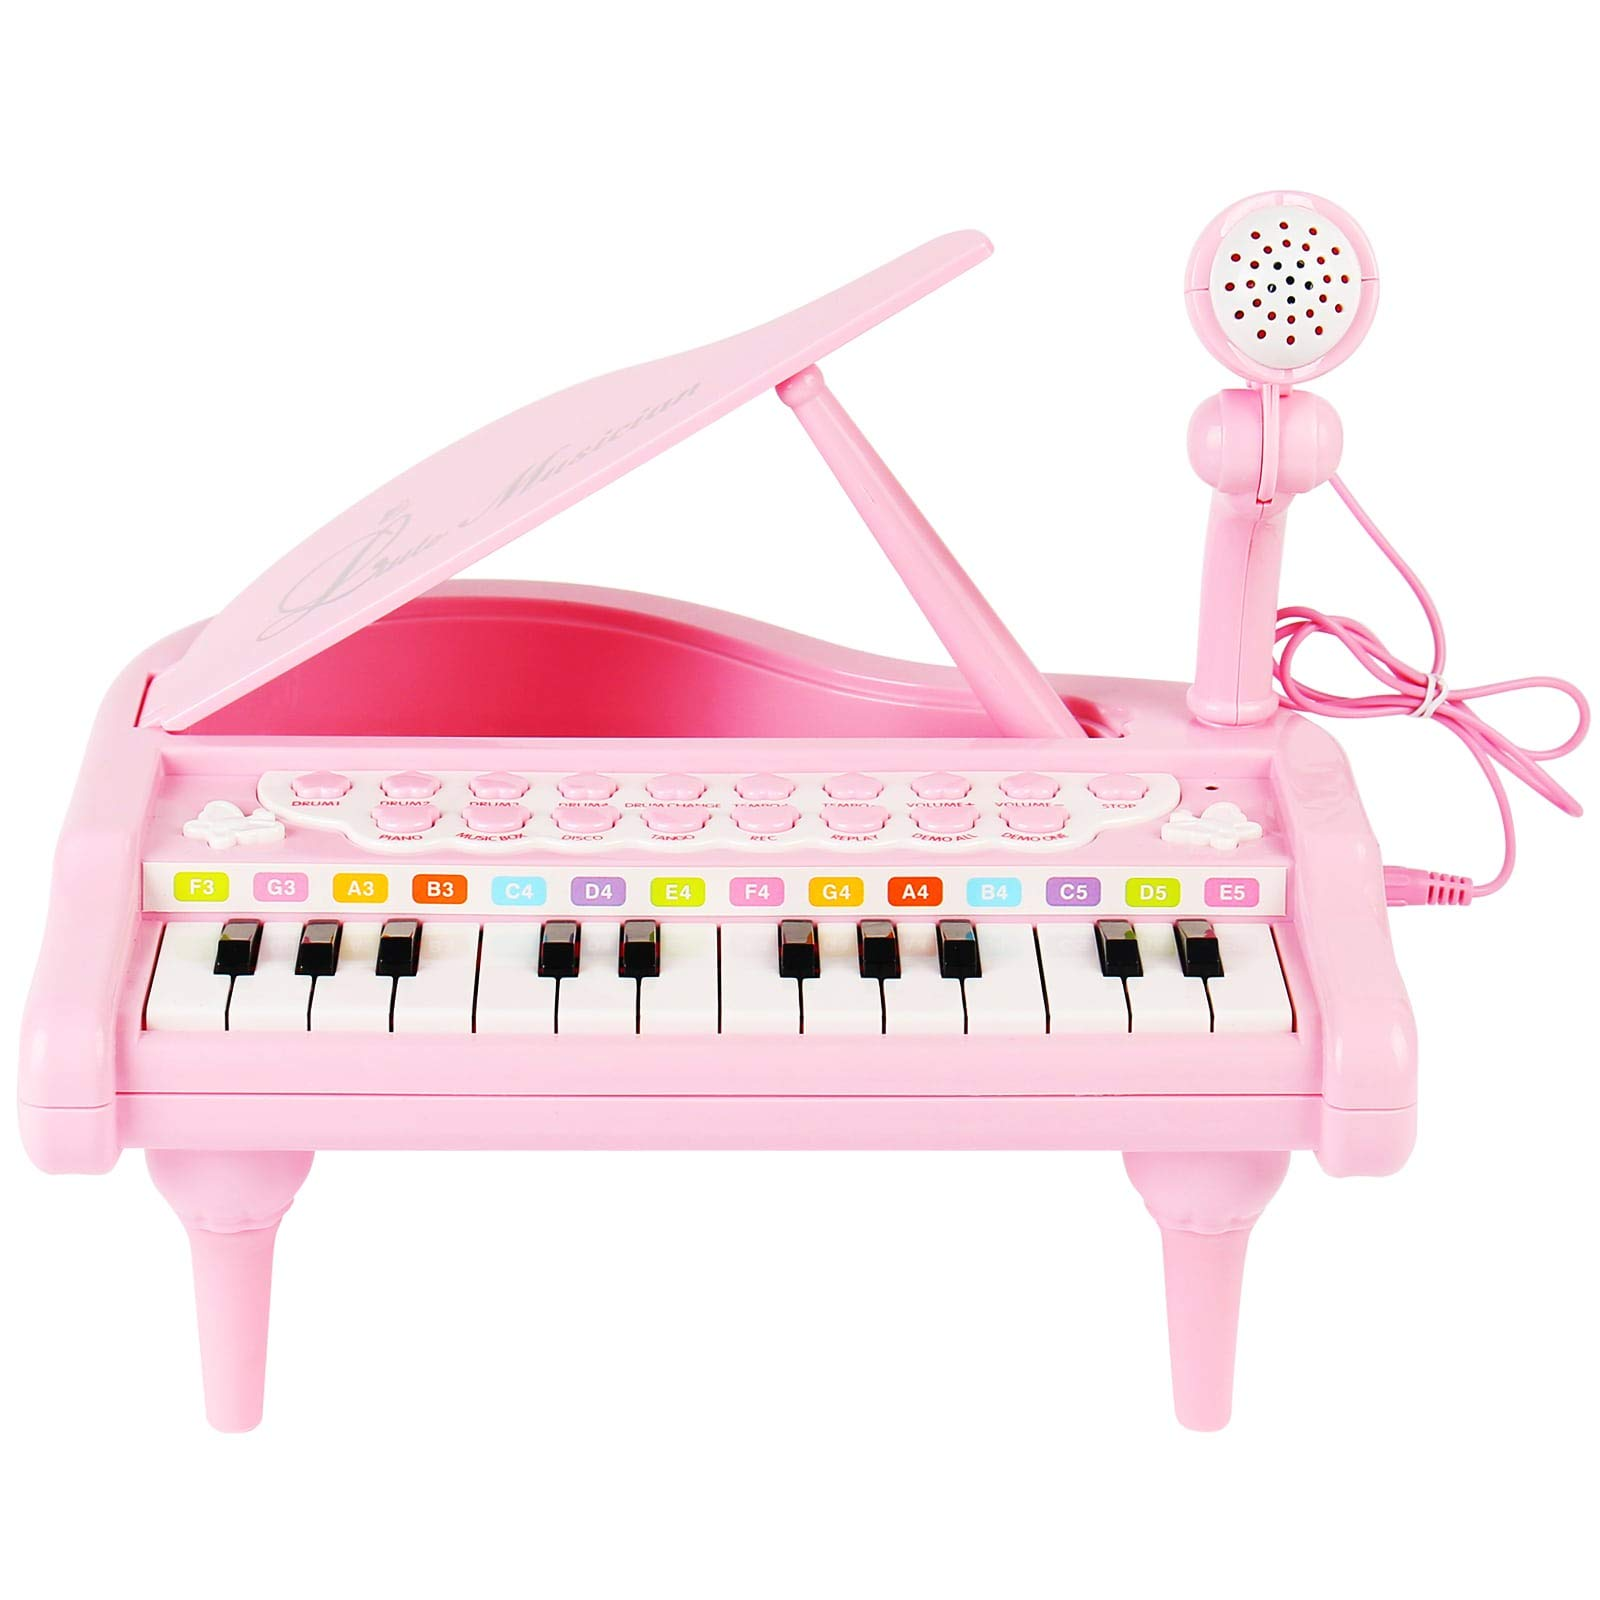 Conomus Piano Keyboard Toy for Kids,1 2 3 4 Year Old Girls First Birthday Gift , 24 Keys Multifunctional Musical Electronic Toy Piano for Toddlers